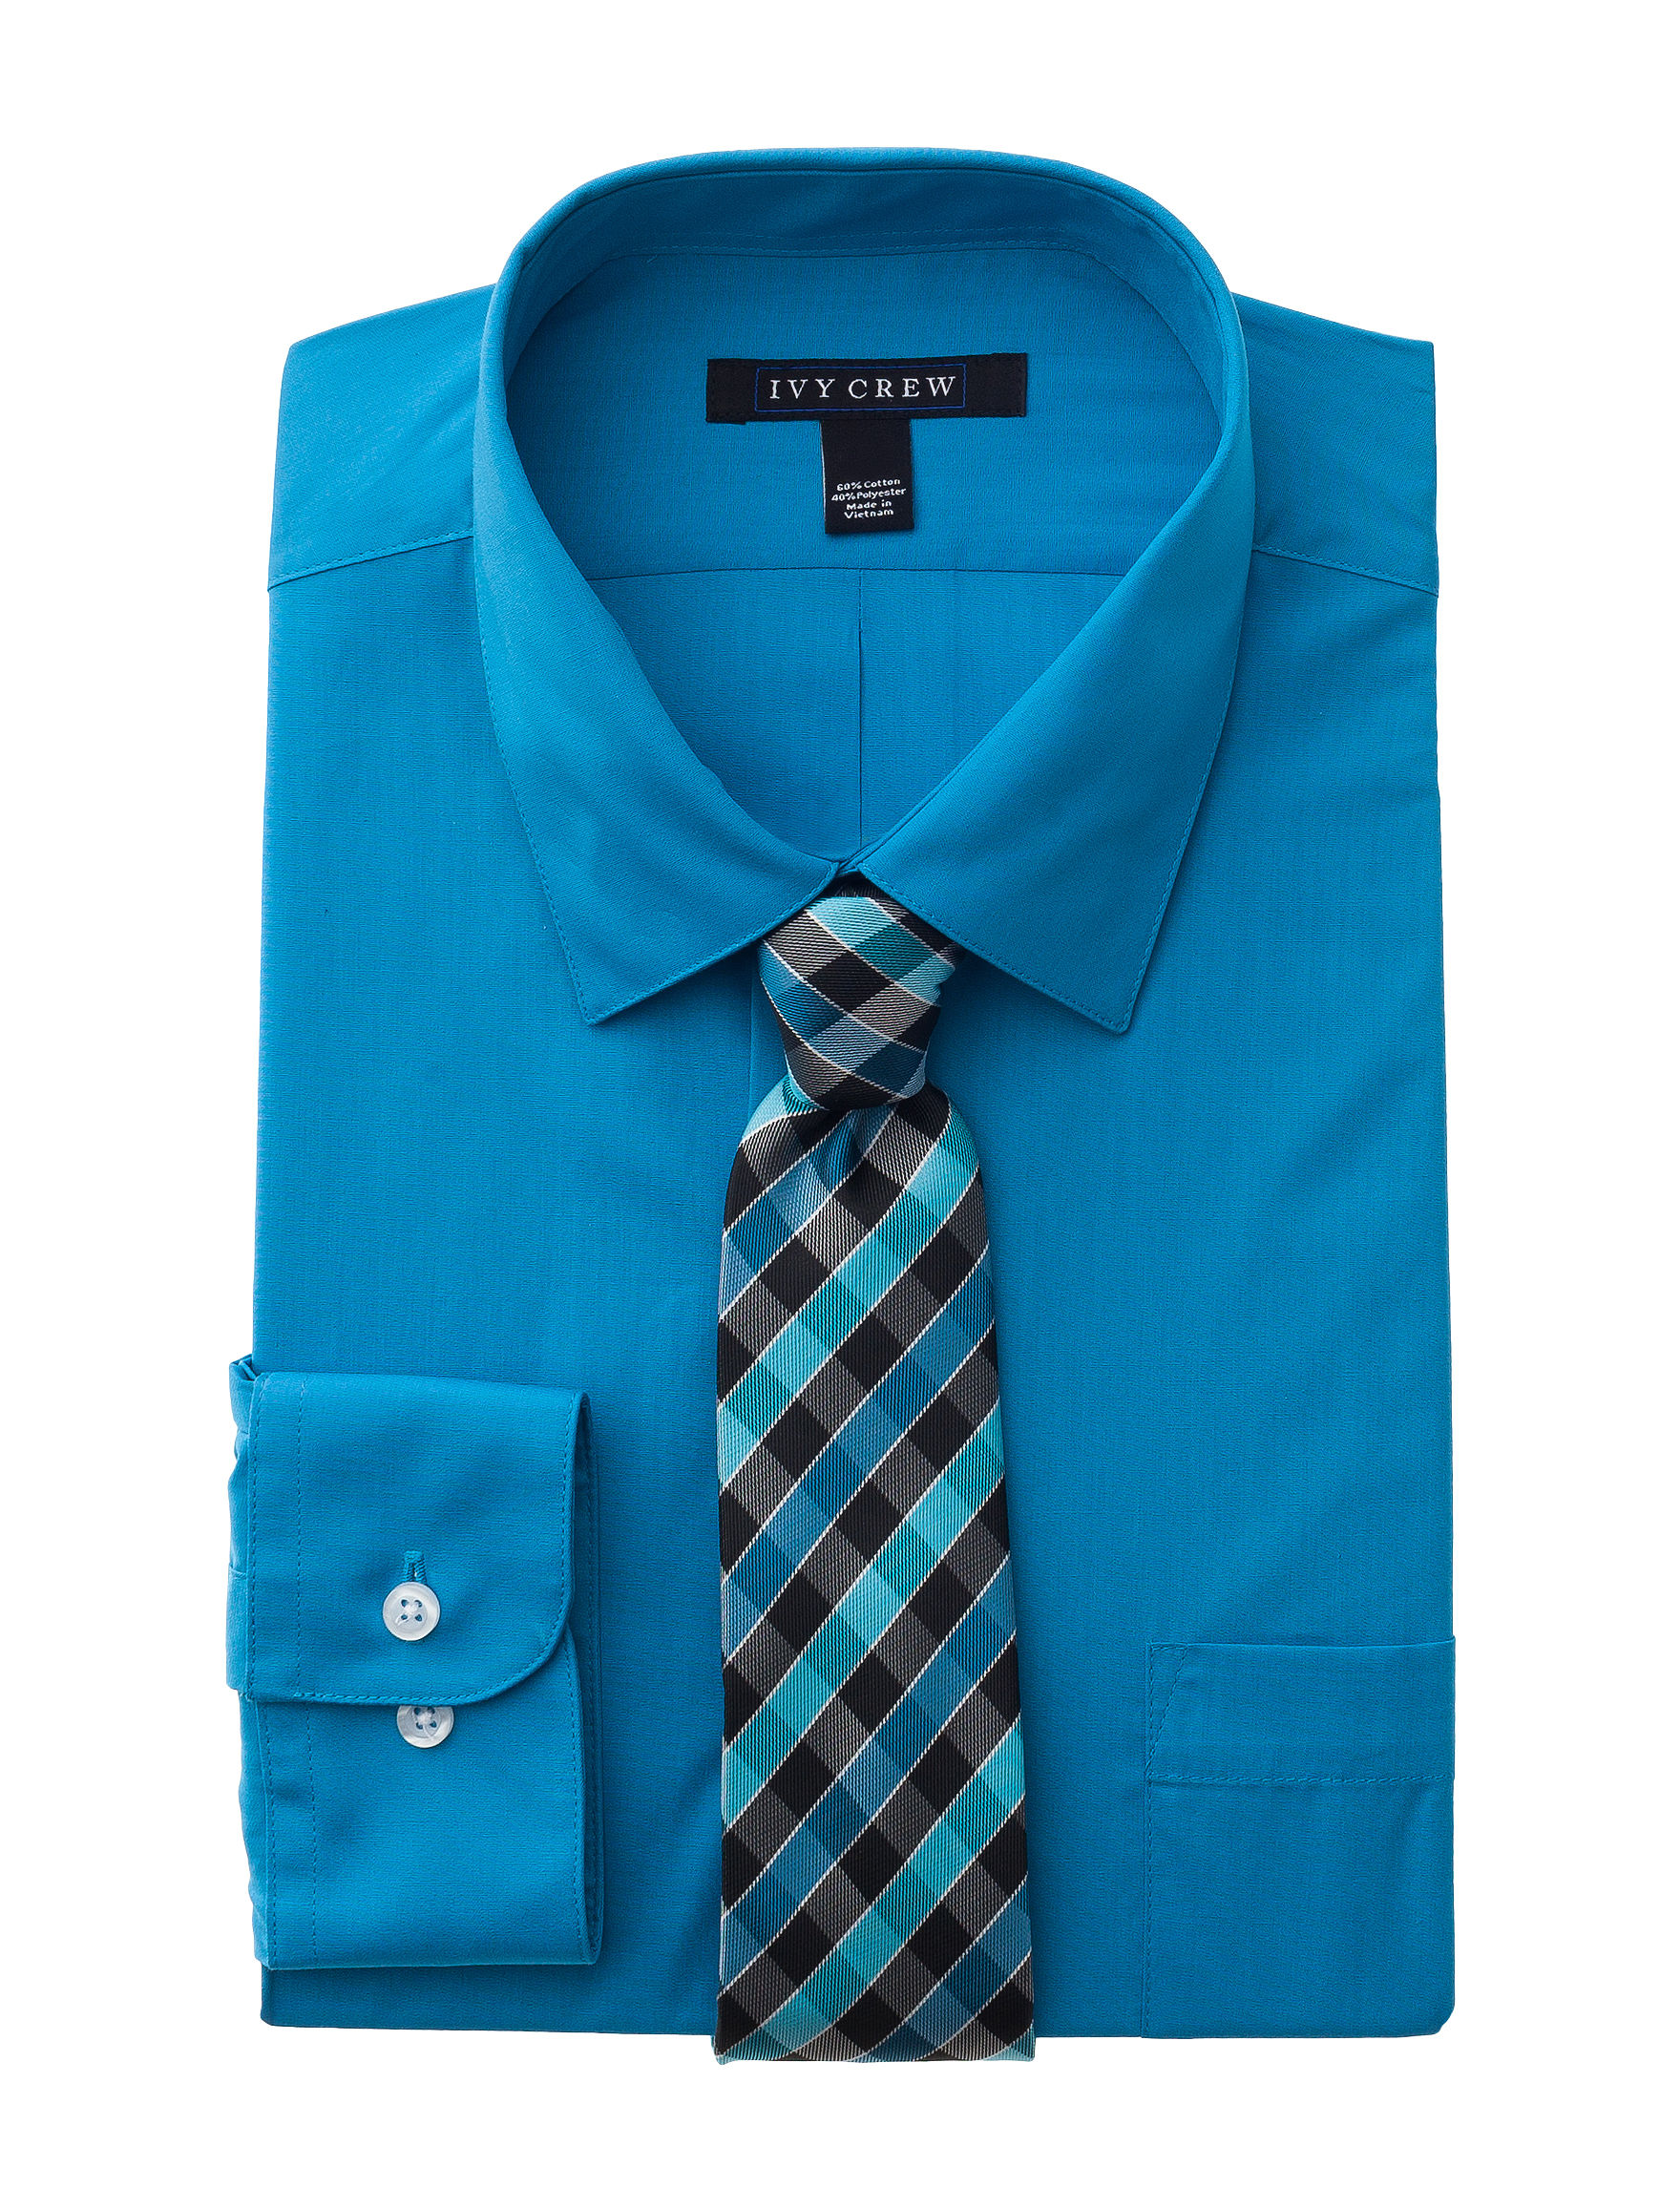 Ivy Crew Mediterranean Dress Shirts